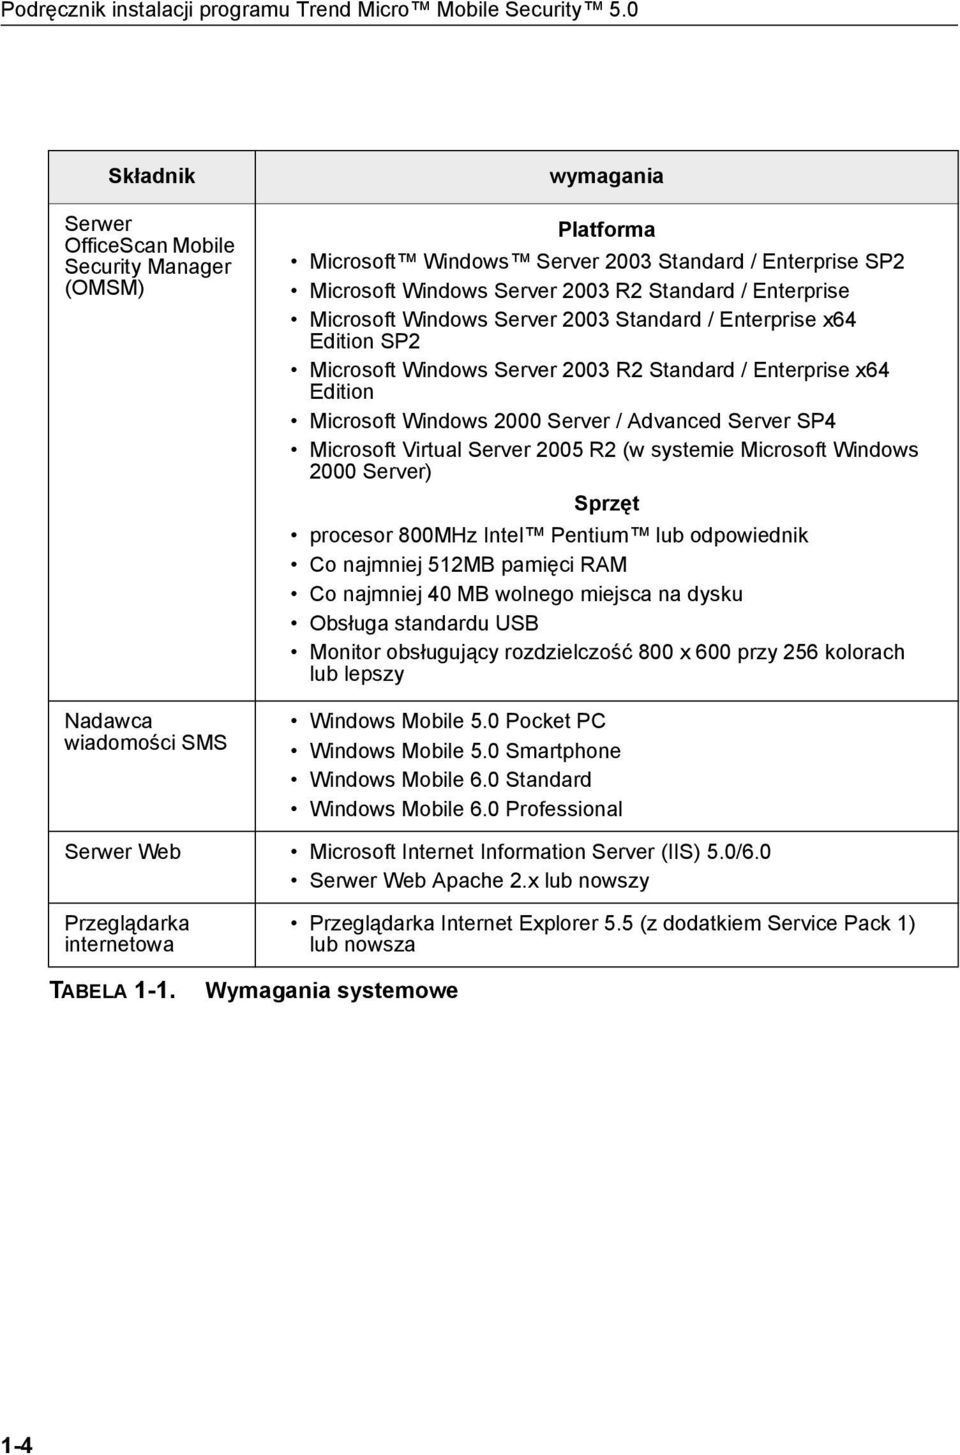 Standard / Enterprise Microsoft Windows Server 2003 Standard / Enterprise x64 Edition SP2 Microsoft Windows Server 2003 R2 Standard / Enterprise x64 Edition Microsoft Windows 2000 Server / Advanced